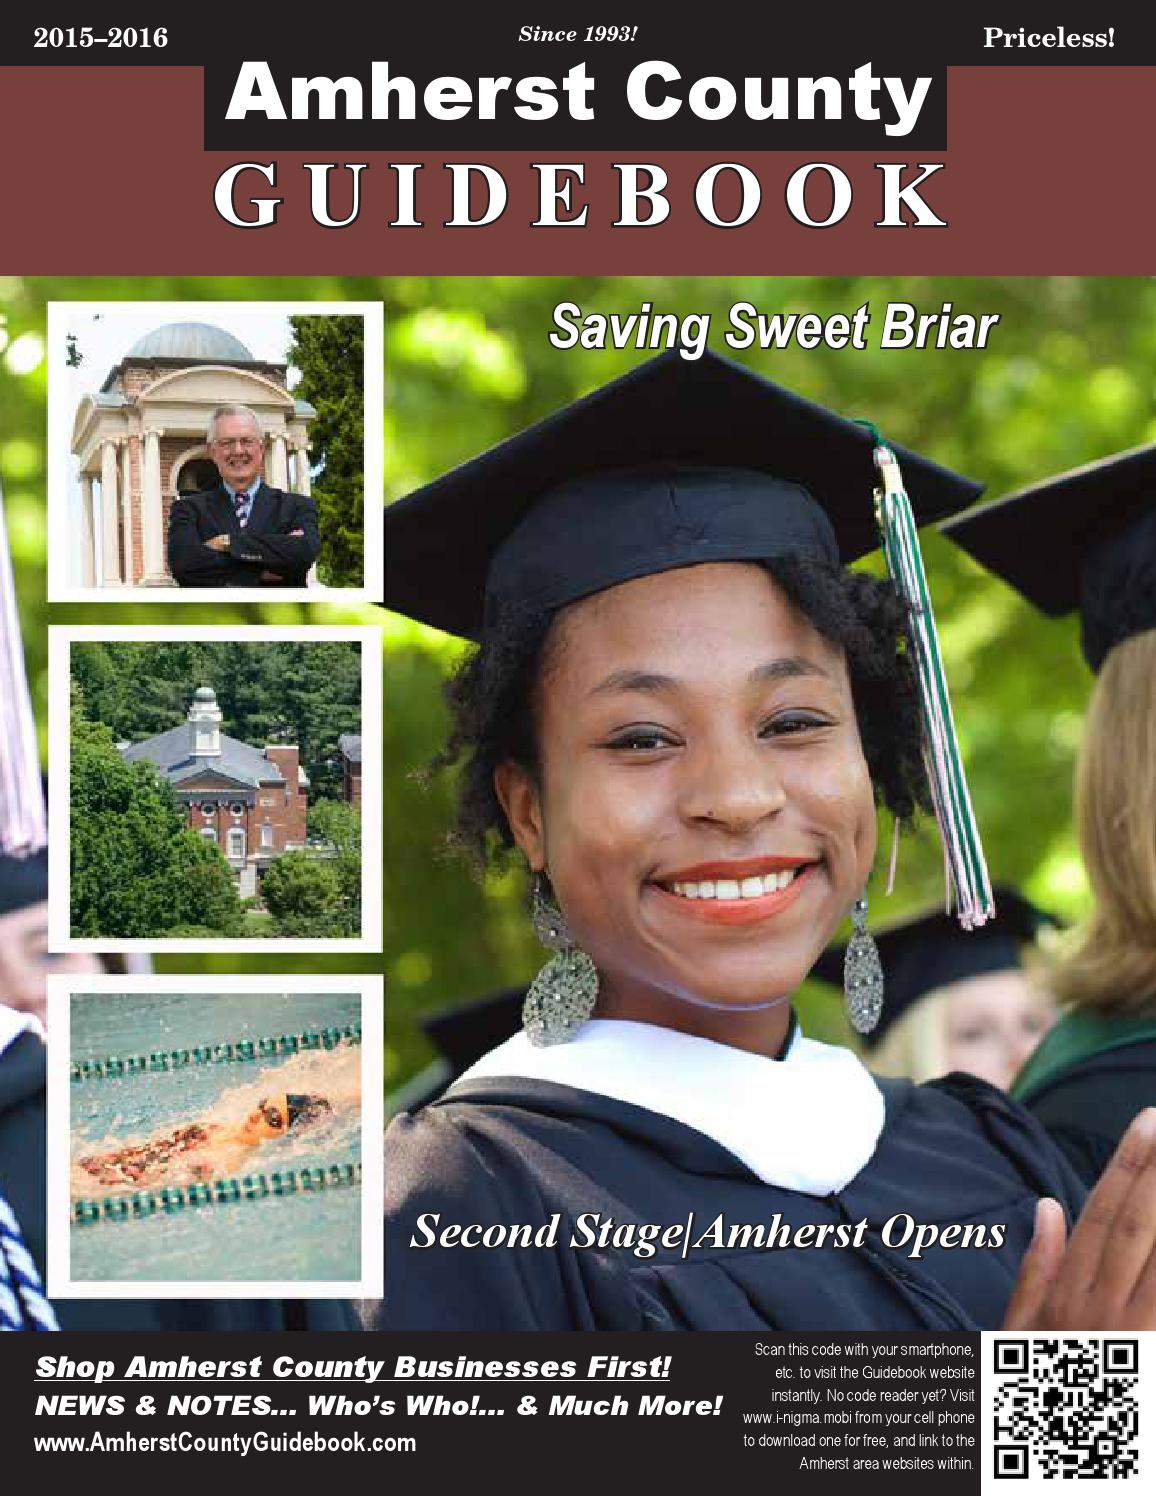 amherst county guidebook by dan curran issuu amherst guidebook 2015